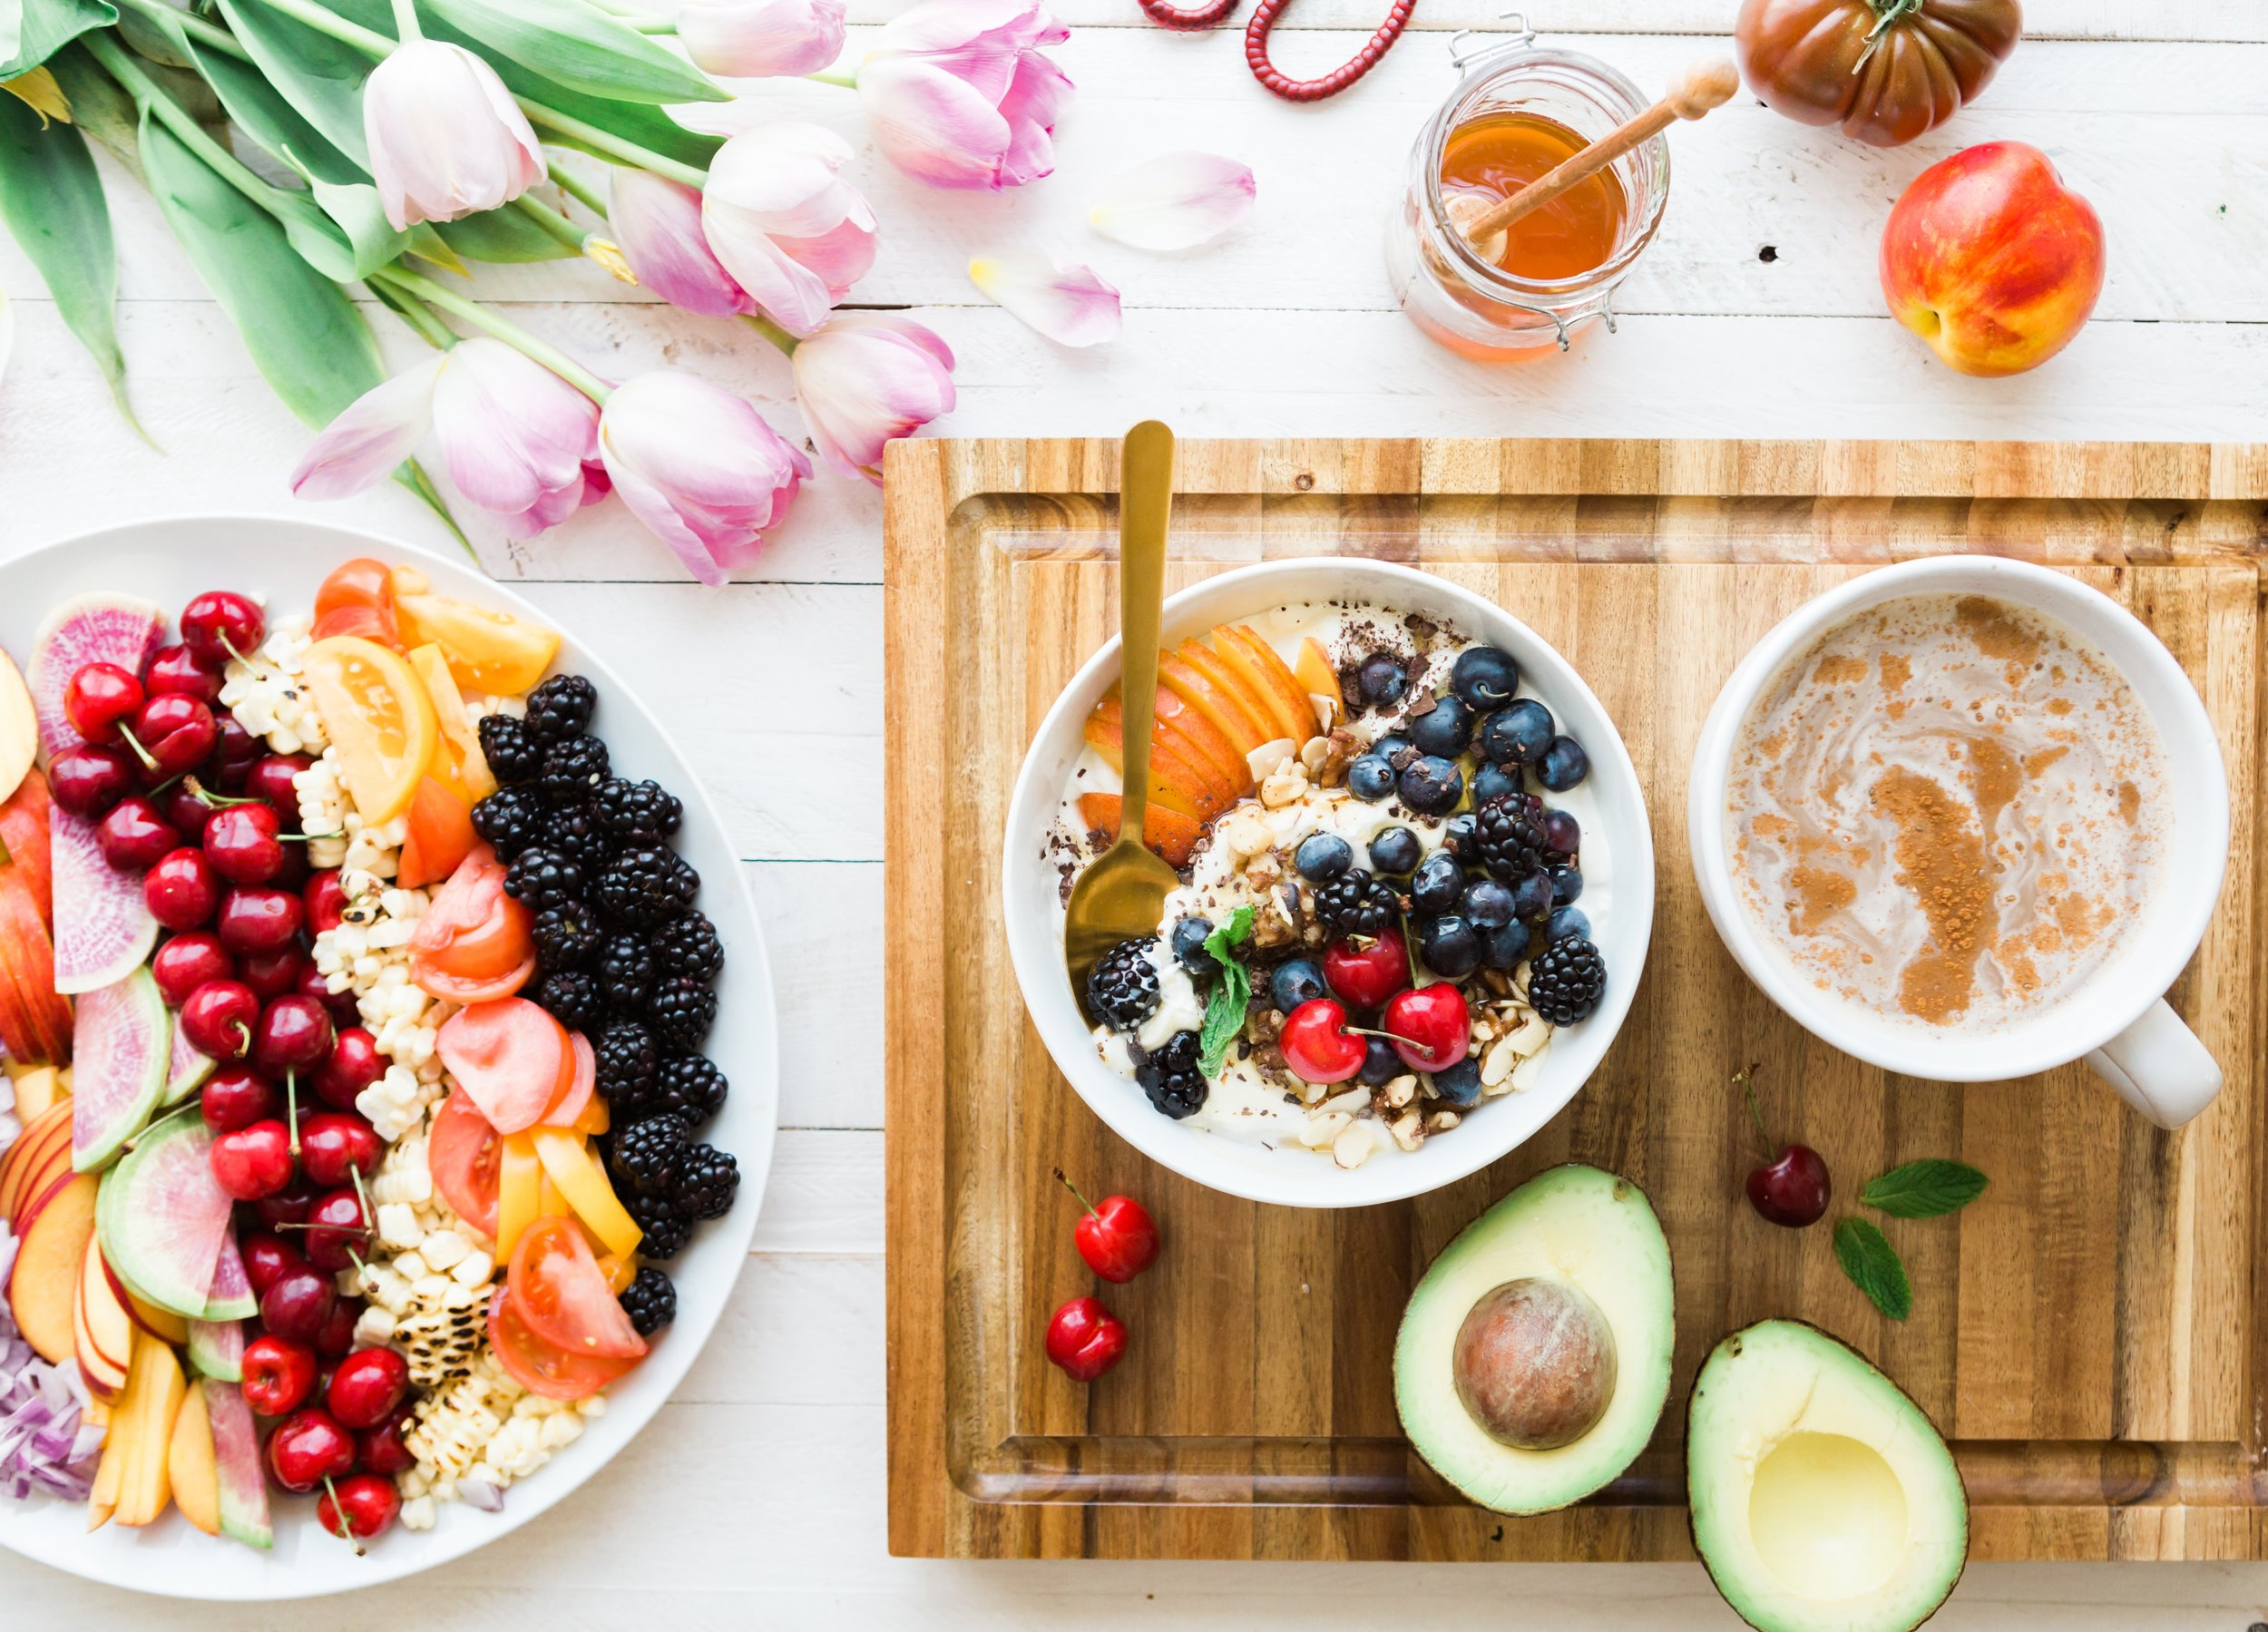 Lot's of Info! - This guide is full of helpful tips for overcoming hashimoto's naturally. I love the autoimmune protocol recipes, and the shopping list! - kira L